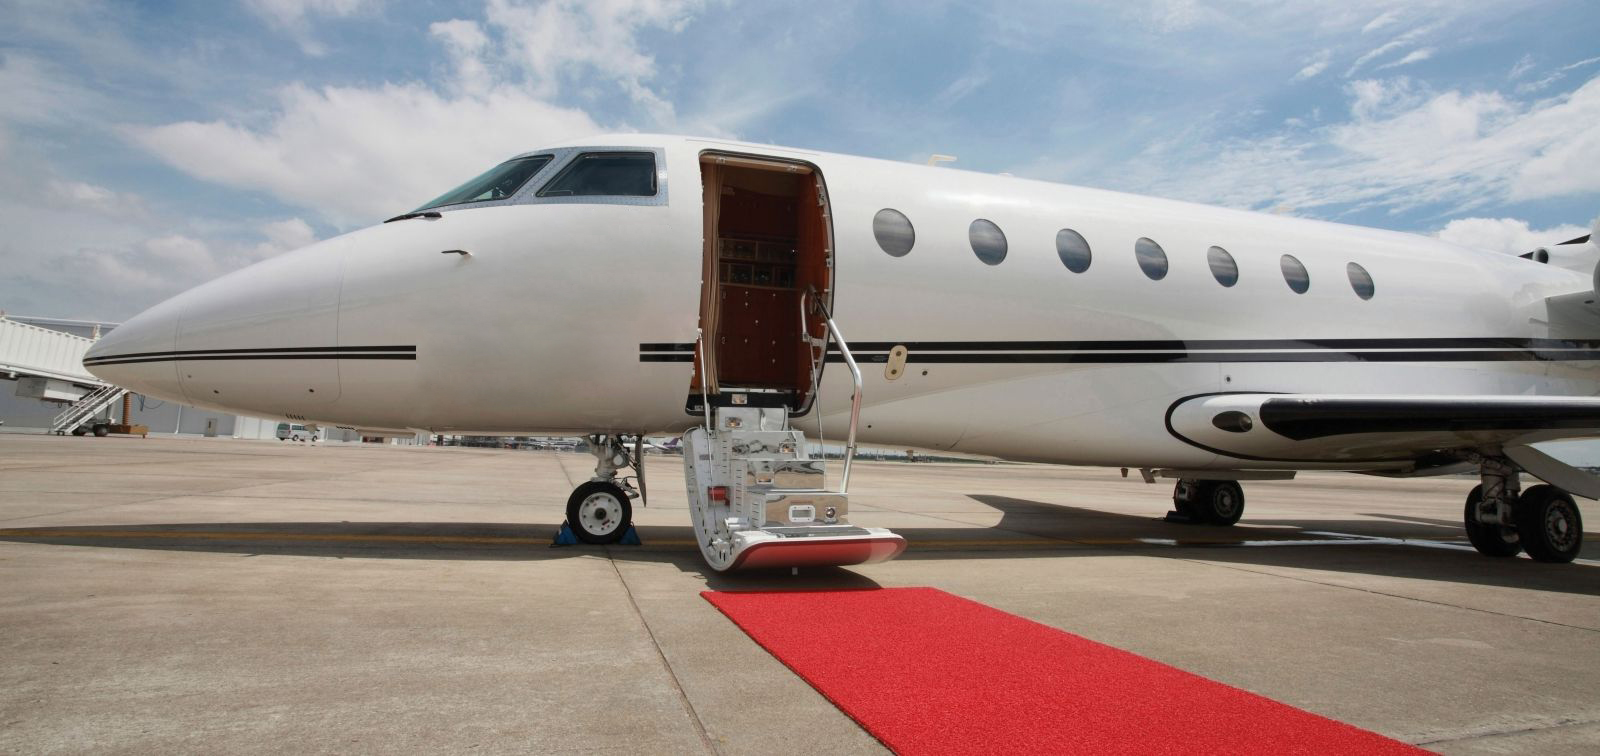 Theres Now An Uber For Private Jet Travel And Its A Gamechanger  BGR